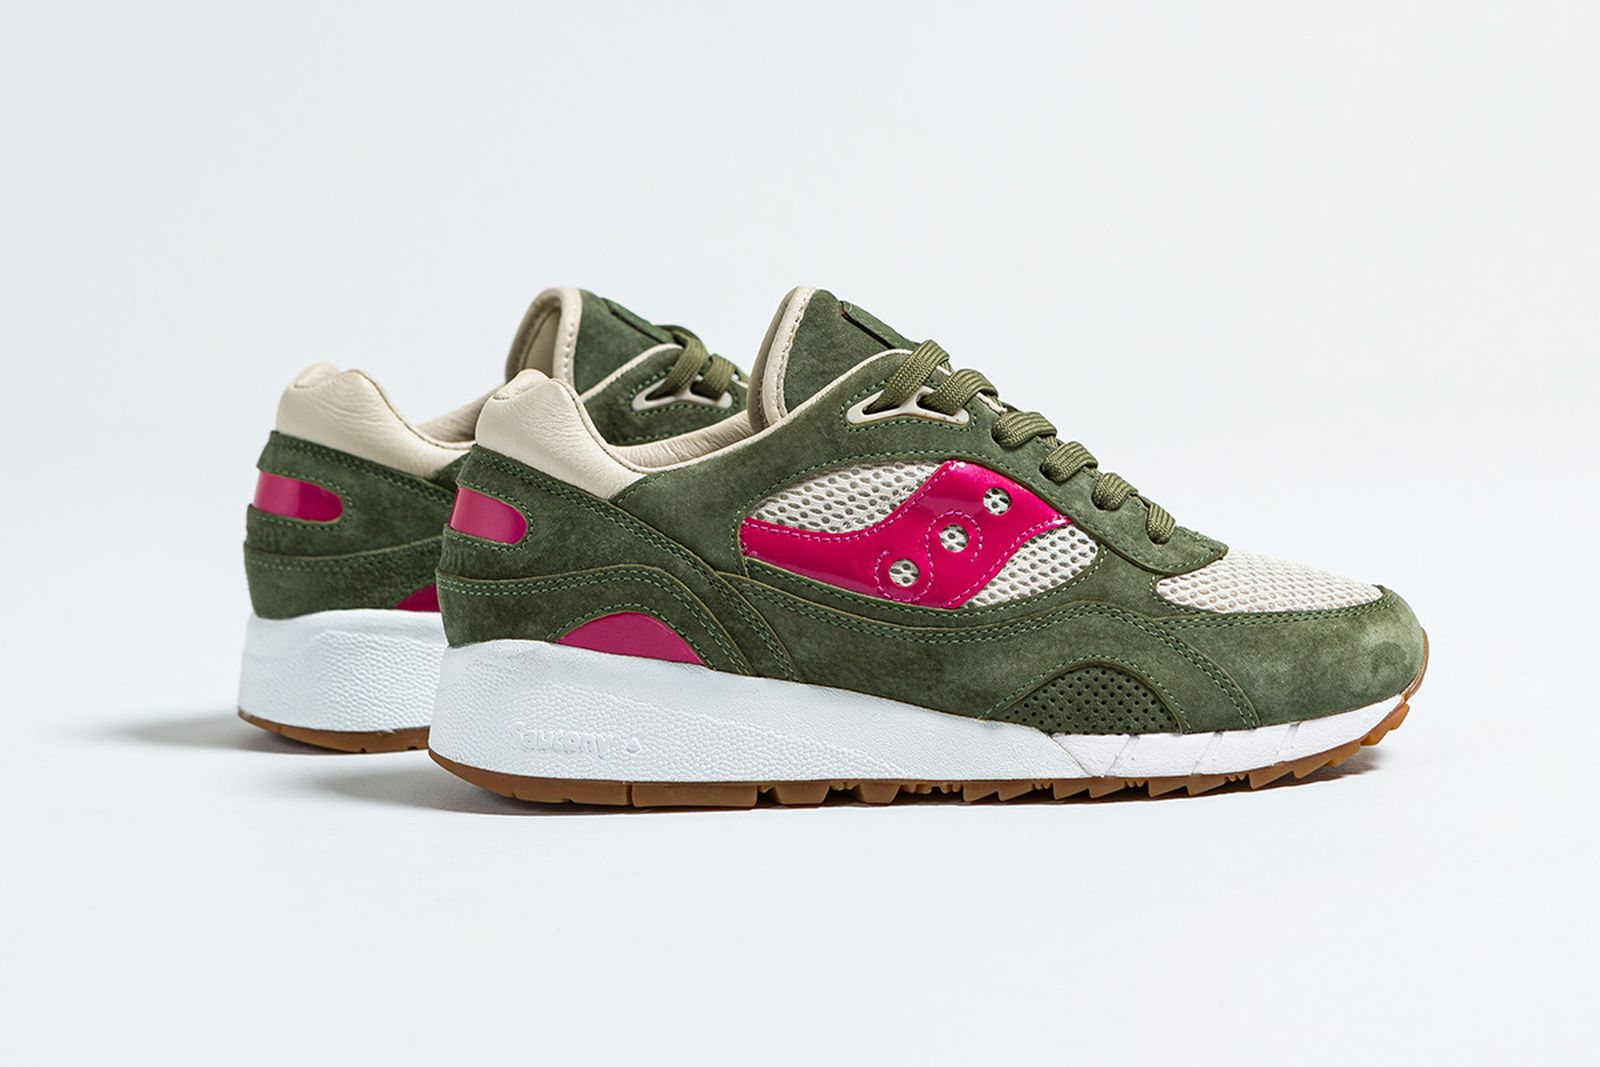 up-there-saucony-shadow-6000-release-date-price-01